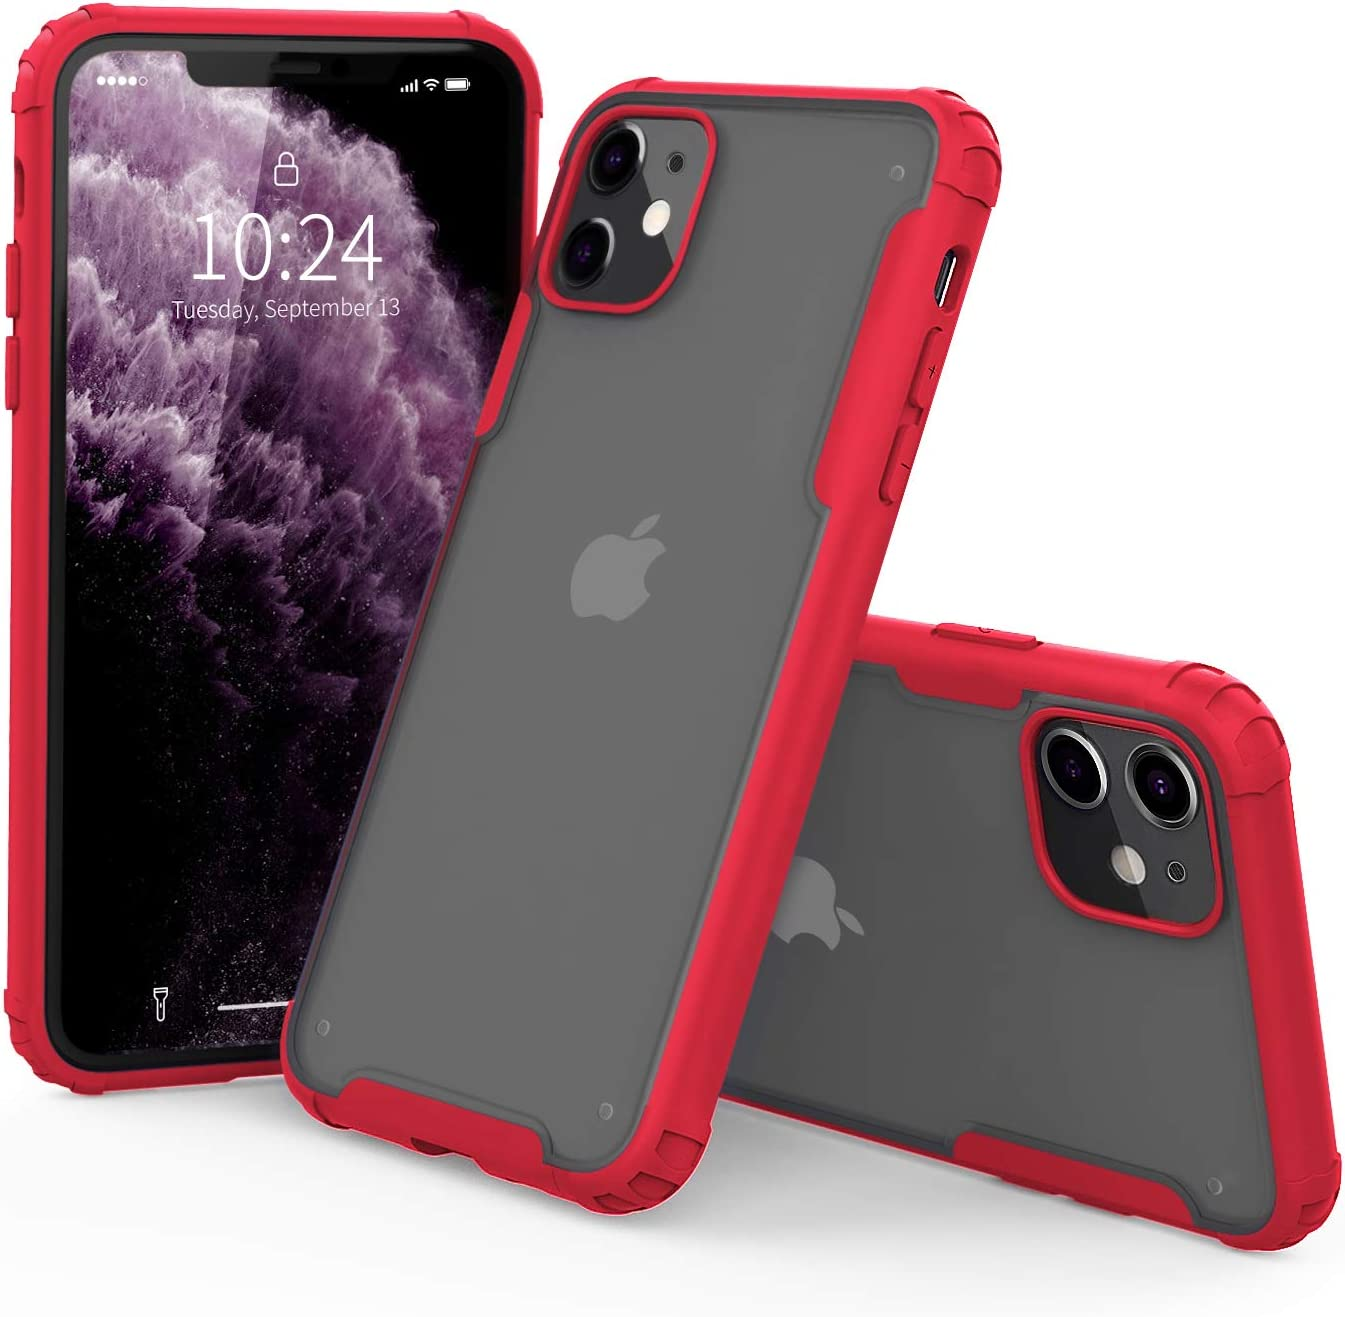 """I STRIVE Heavy Duty Military Grade iPhone 11 Case -Matte Translucent - Phone Armor - Shock/Shatterproof - Slim - Hybrid Materials - Wireless Charging - Compatible with iPhone 11 6.1"""" (Red)"""